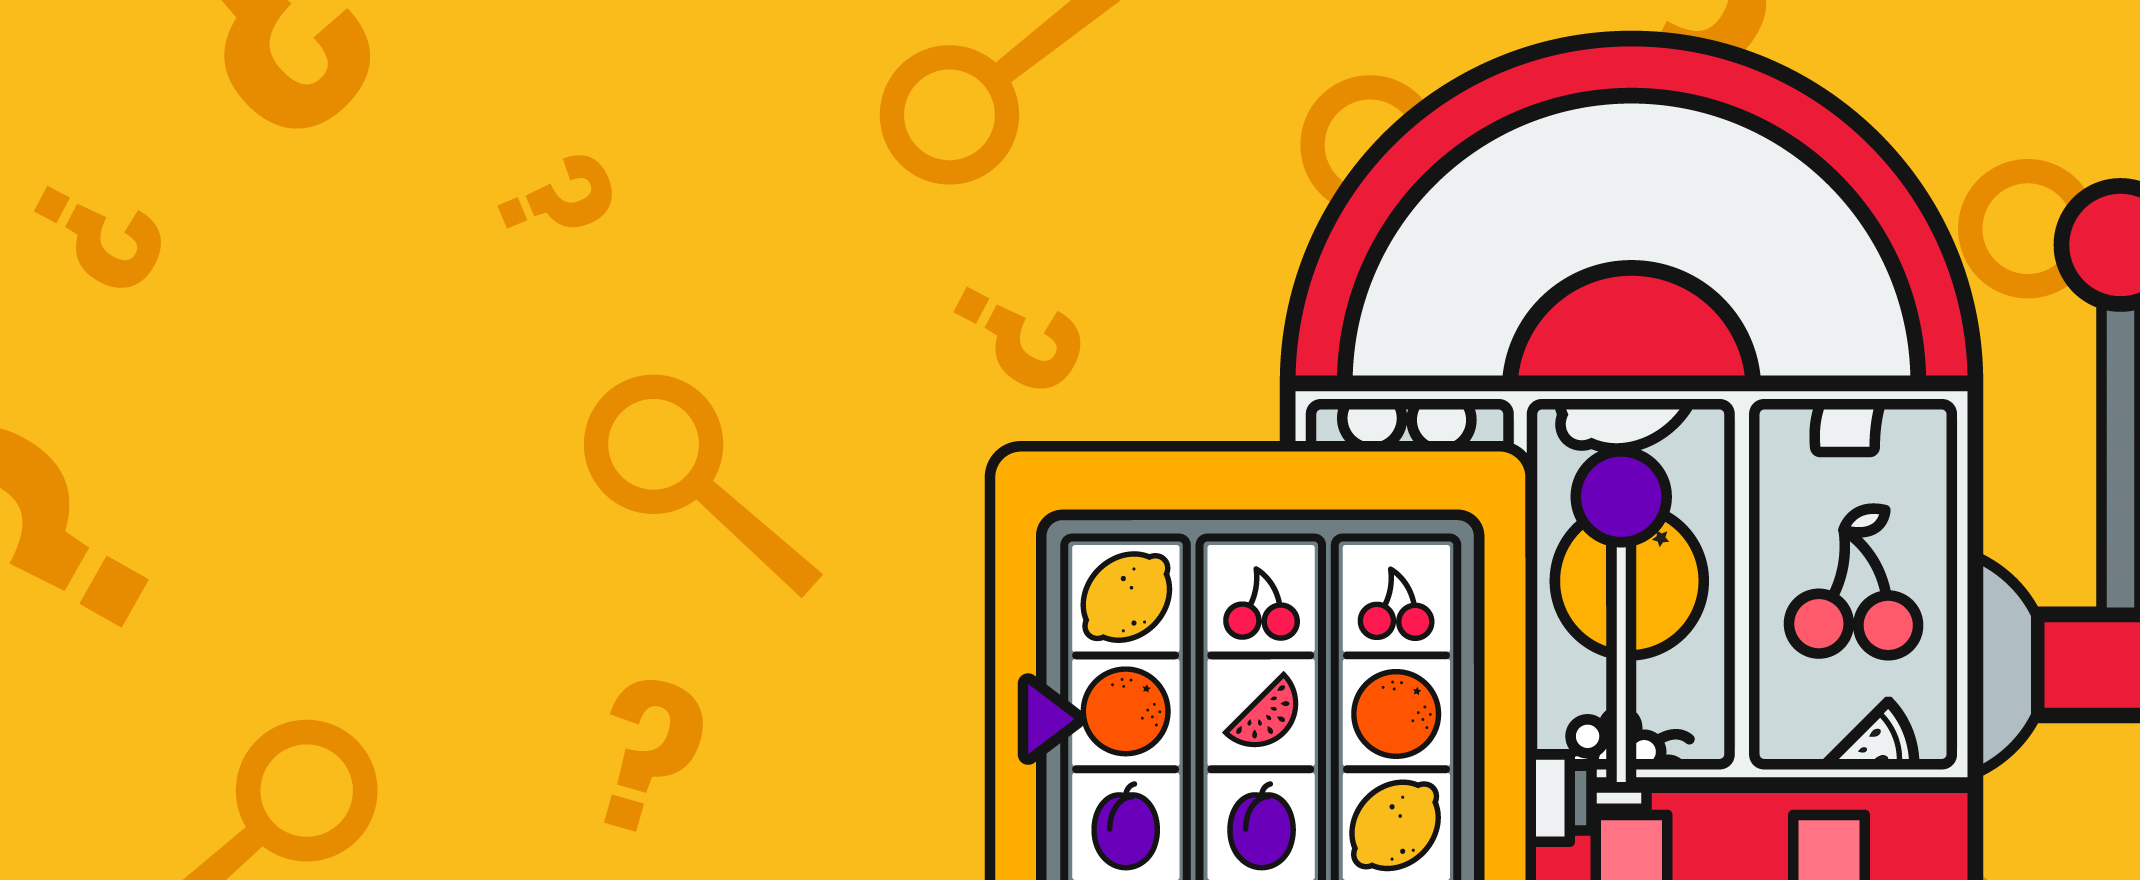 There are many ways to play slot machines